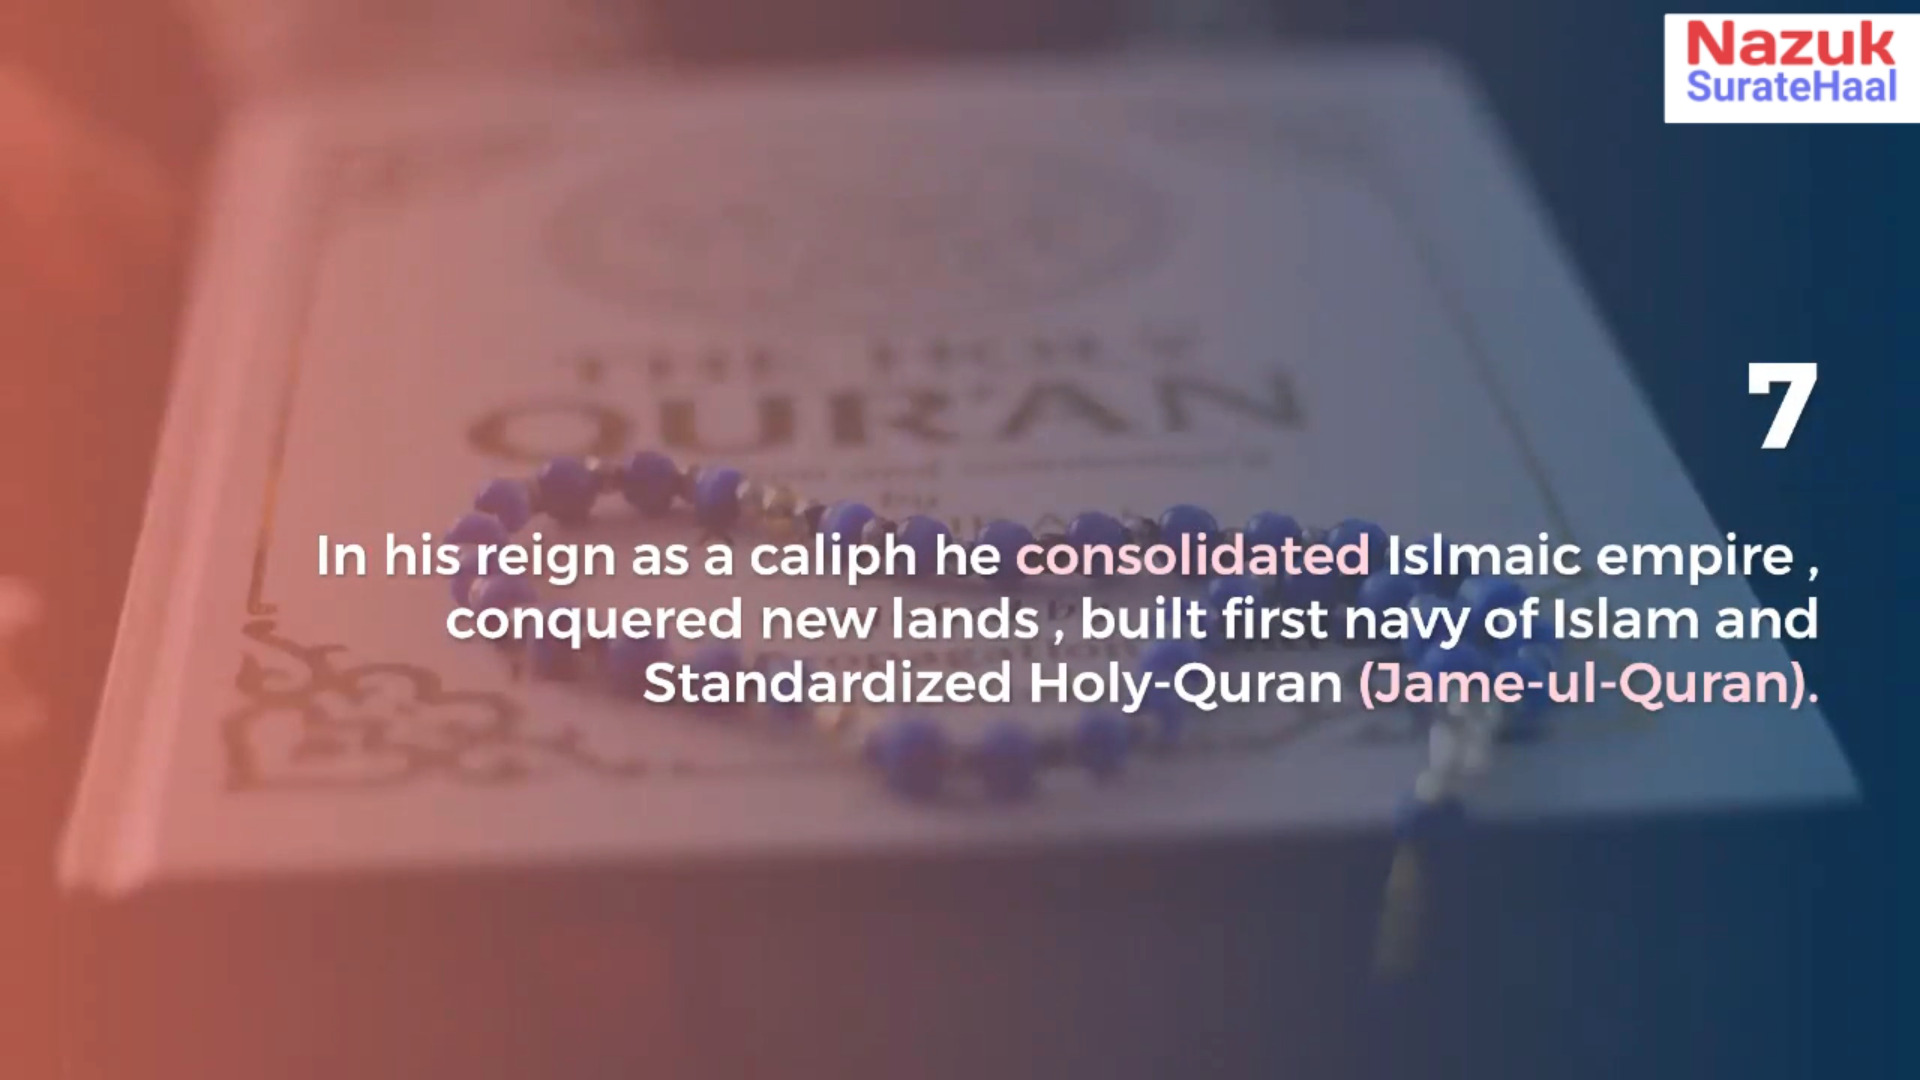 In his reign as a caliph he consolidated Islmaic empire , conquered new lands , built first navy of Islam and Standardized Holy-Quran (Jame-ul-Quran).